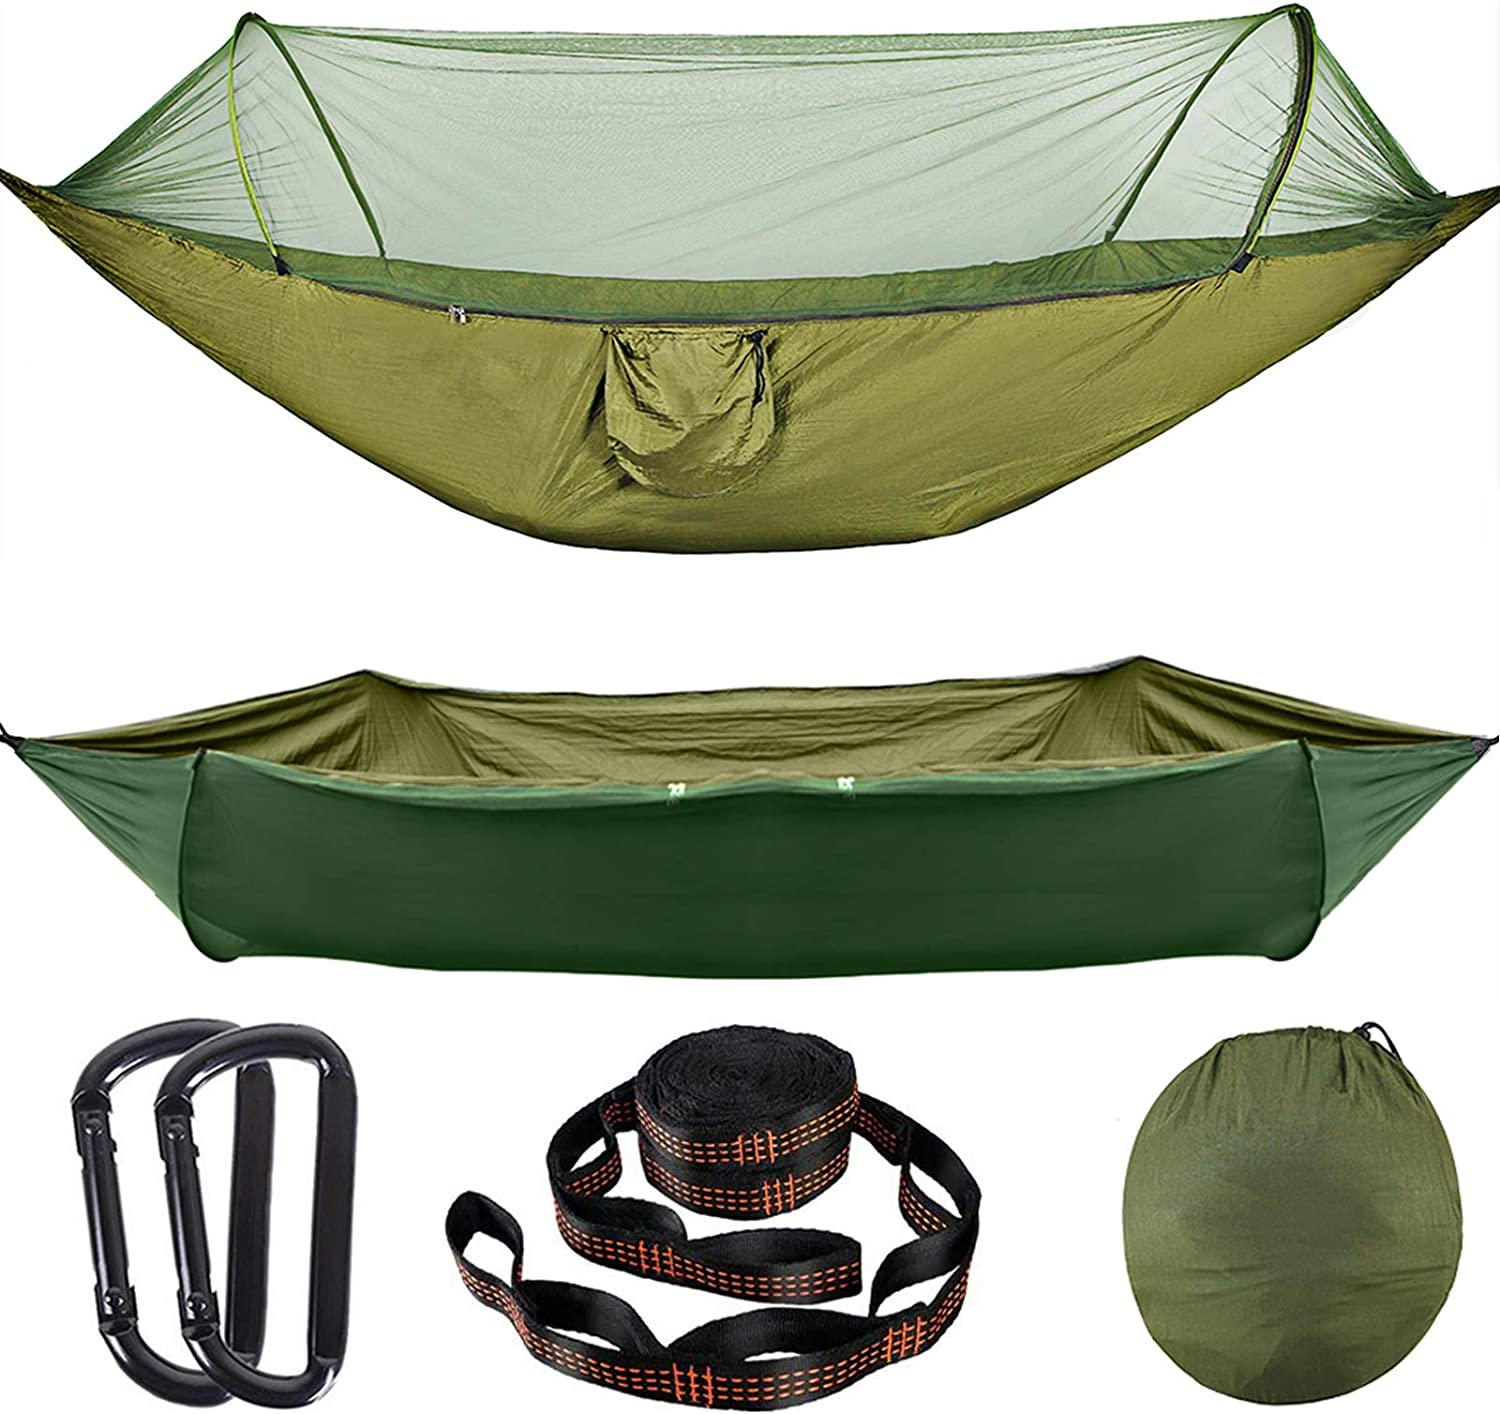 Details about  /Camping Hammock With Mosquito Net 1-2 Person Portable Big Hanging Sleeping Bed